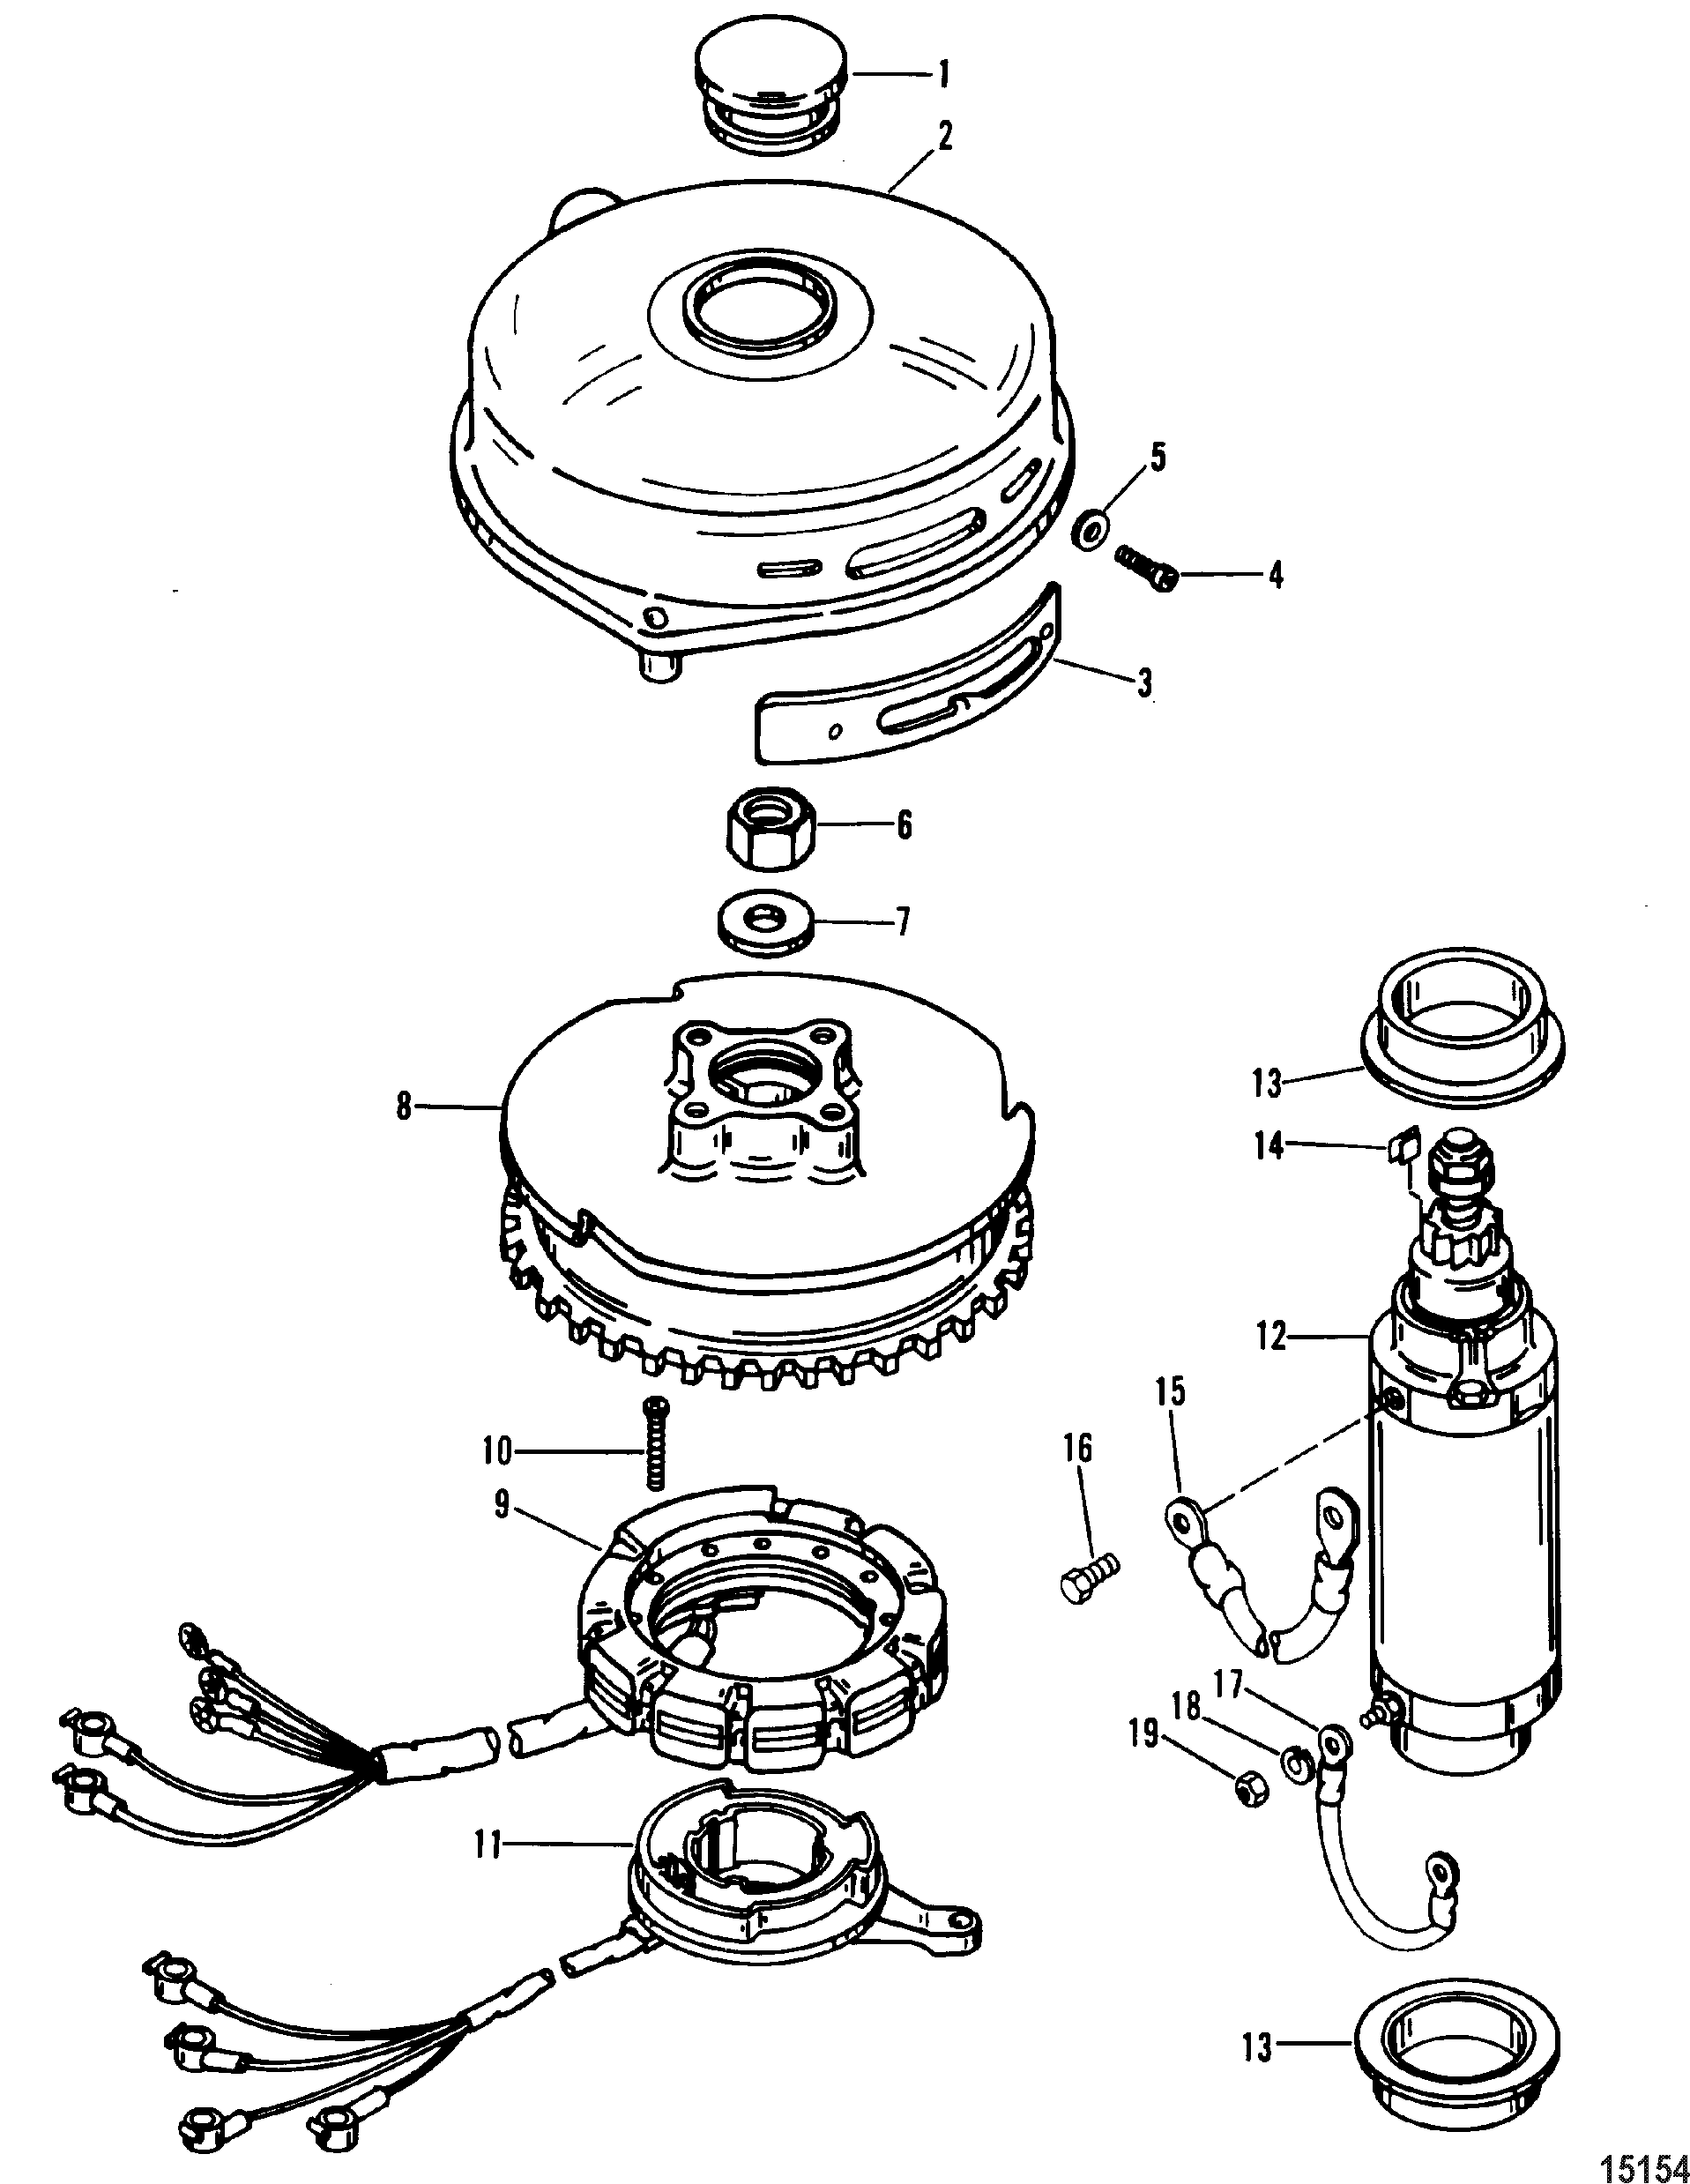 3 Cylinder 90 Hp Mercury Wiring Diagram Real Tach Flywheel And Starter Motor For Mariner 70 75 80 Ignition Switch 2 Stroke